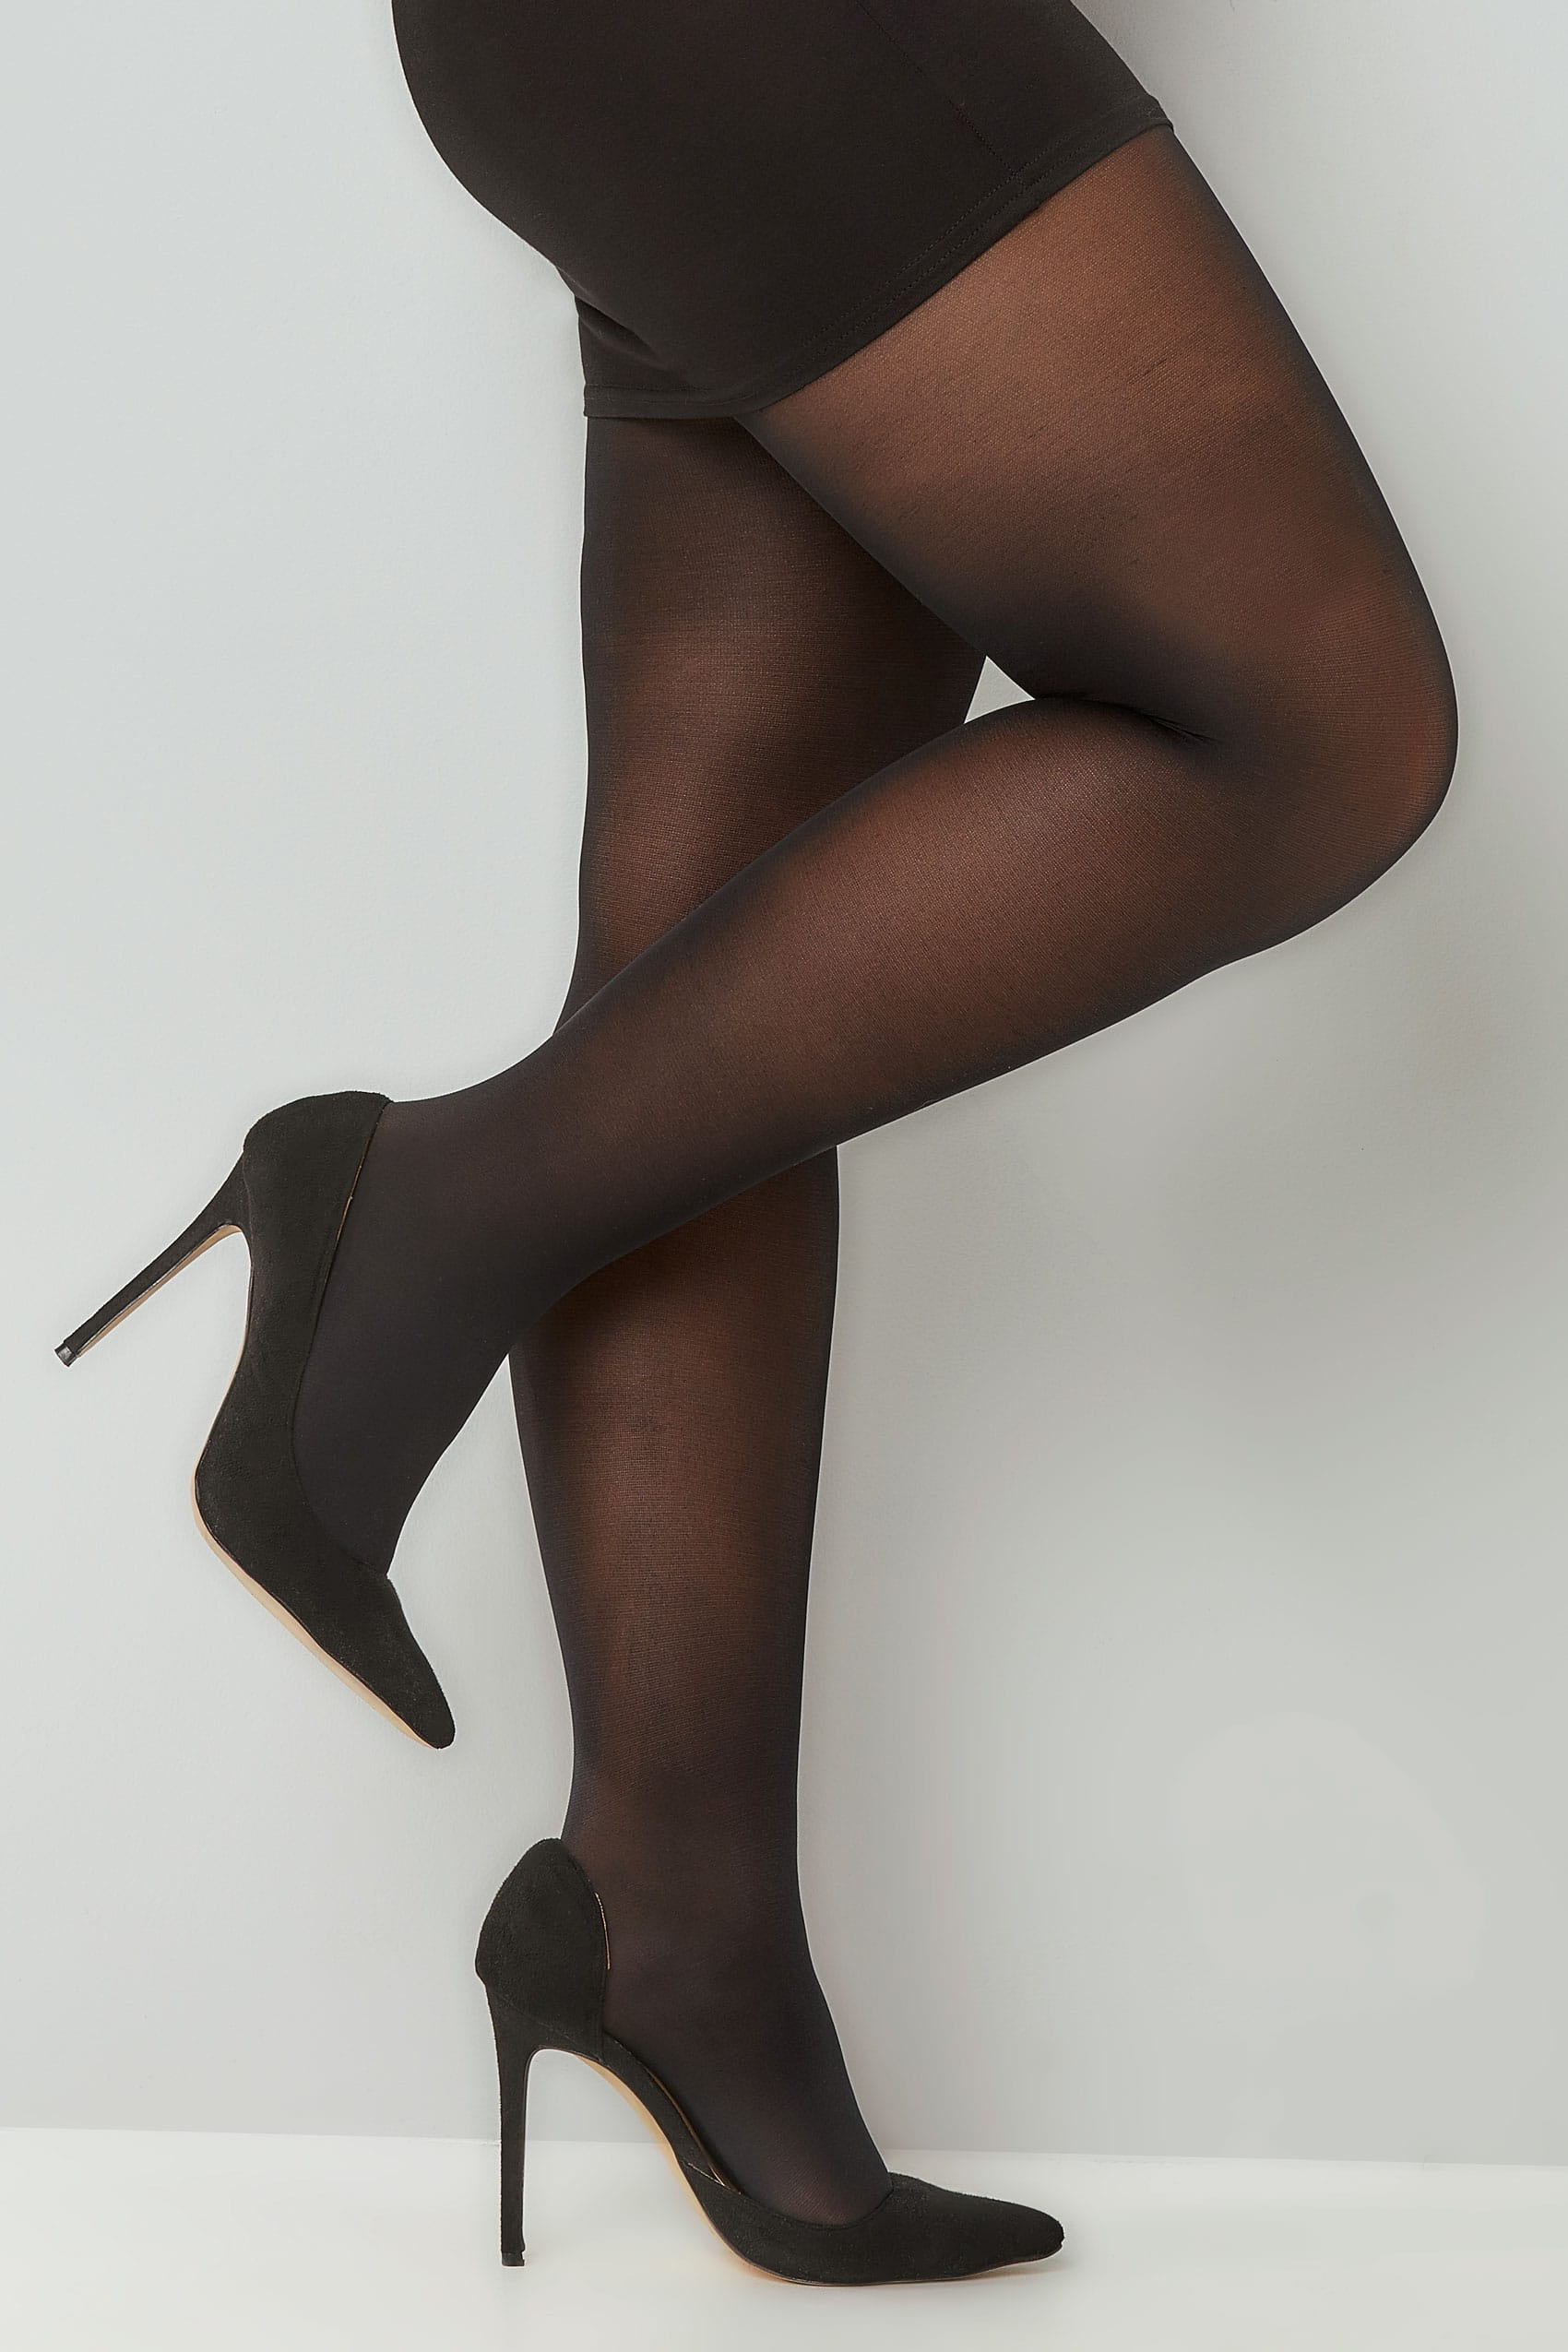 Product Features One pair of opaque control-top tights, 90 denier leg for complete coverage.